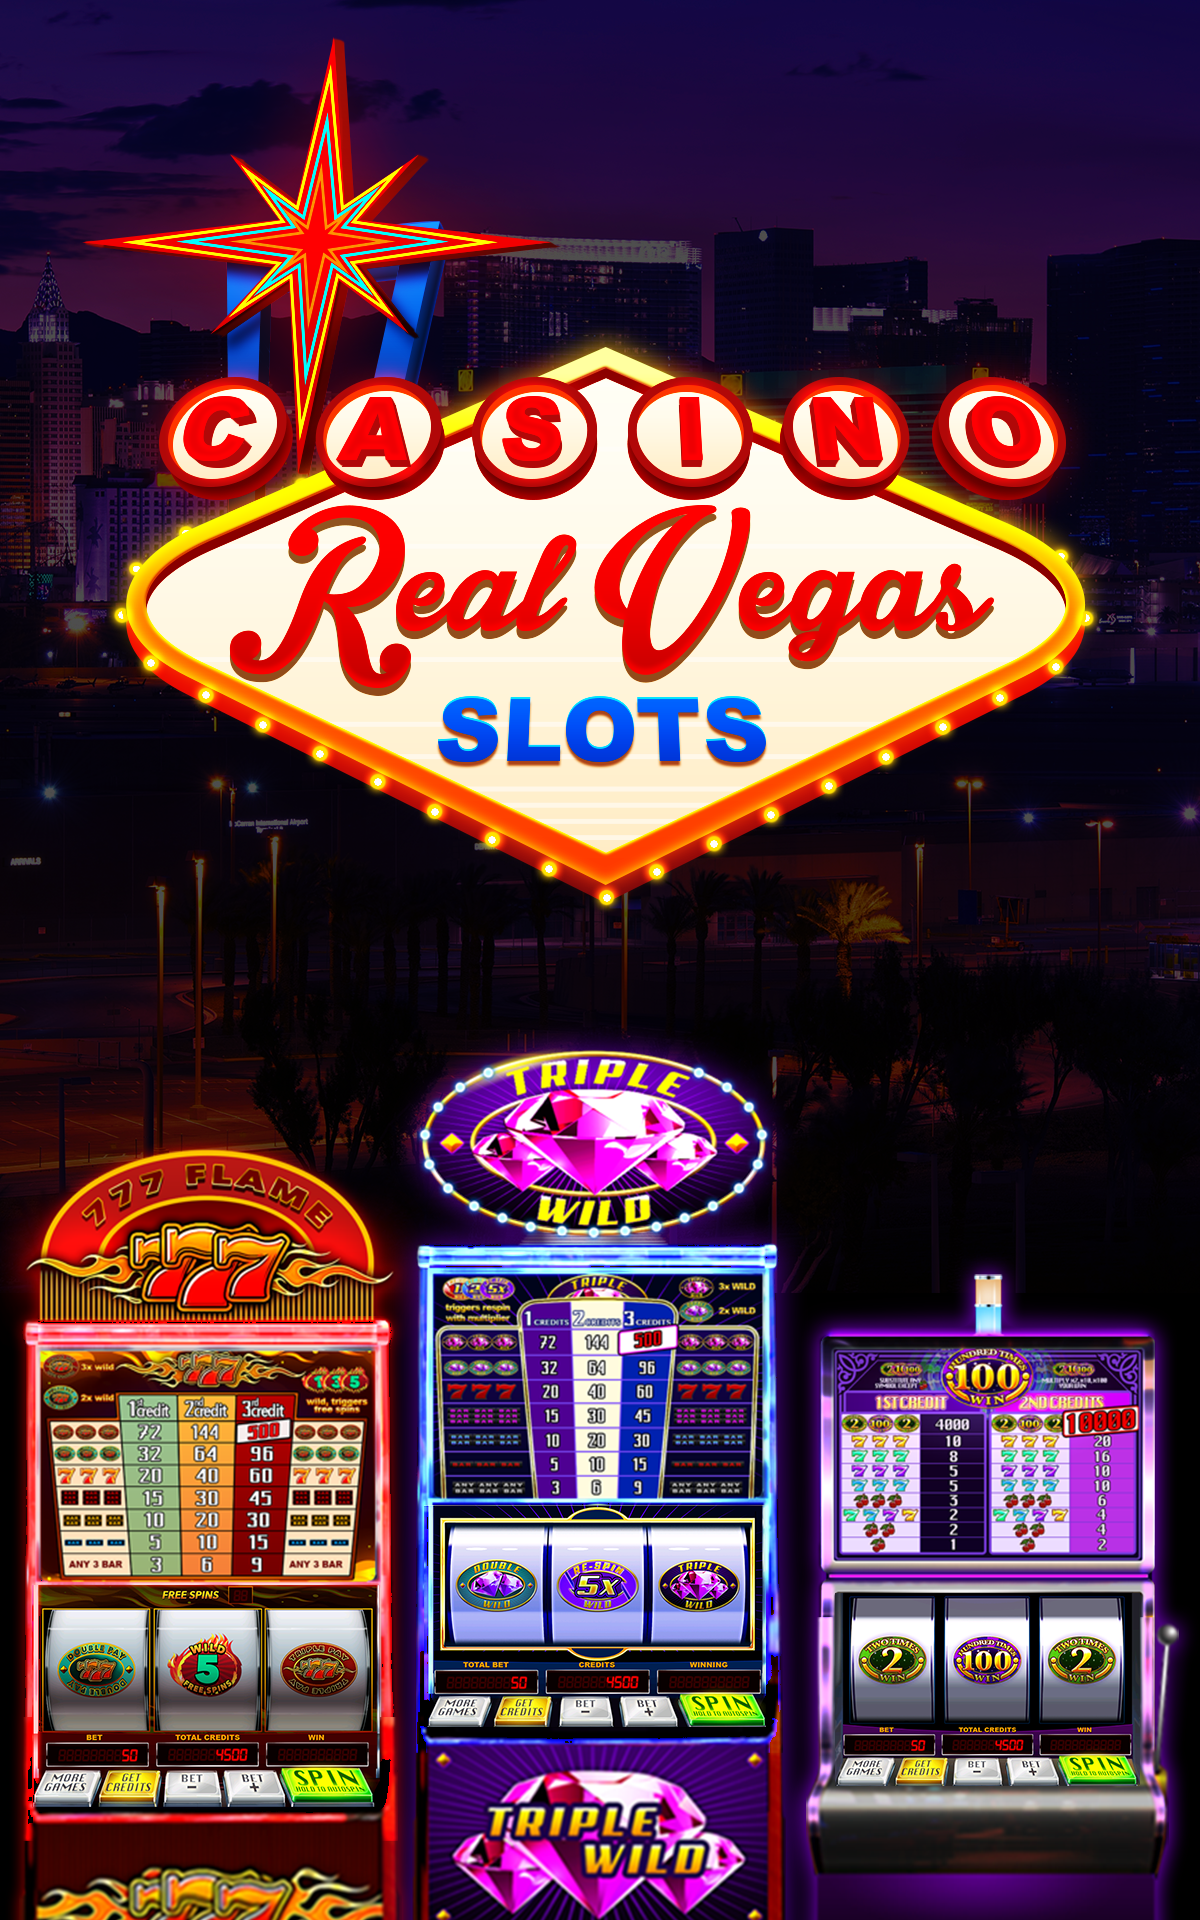 PlayOJO Reel Spinoff Slot Tournaments - Win Free Spin Packages